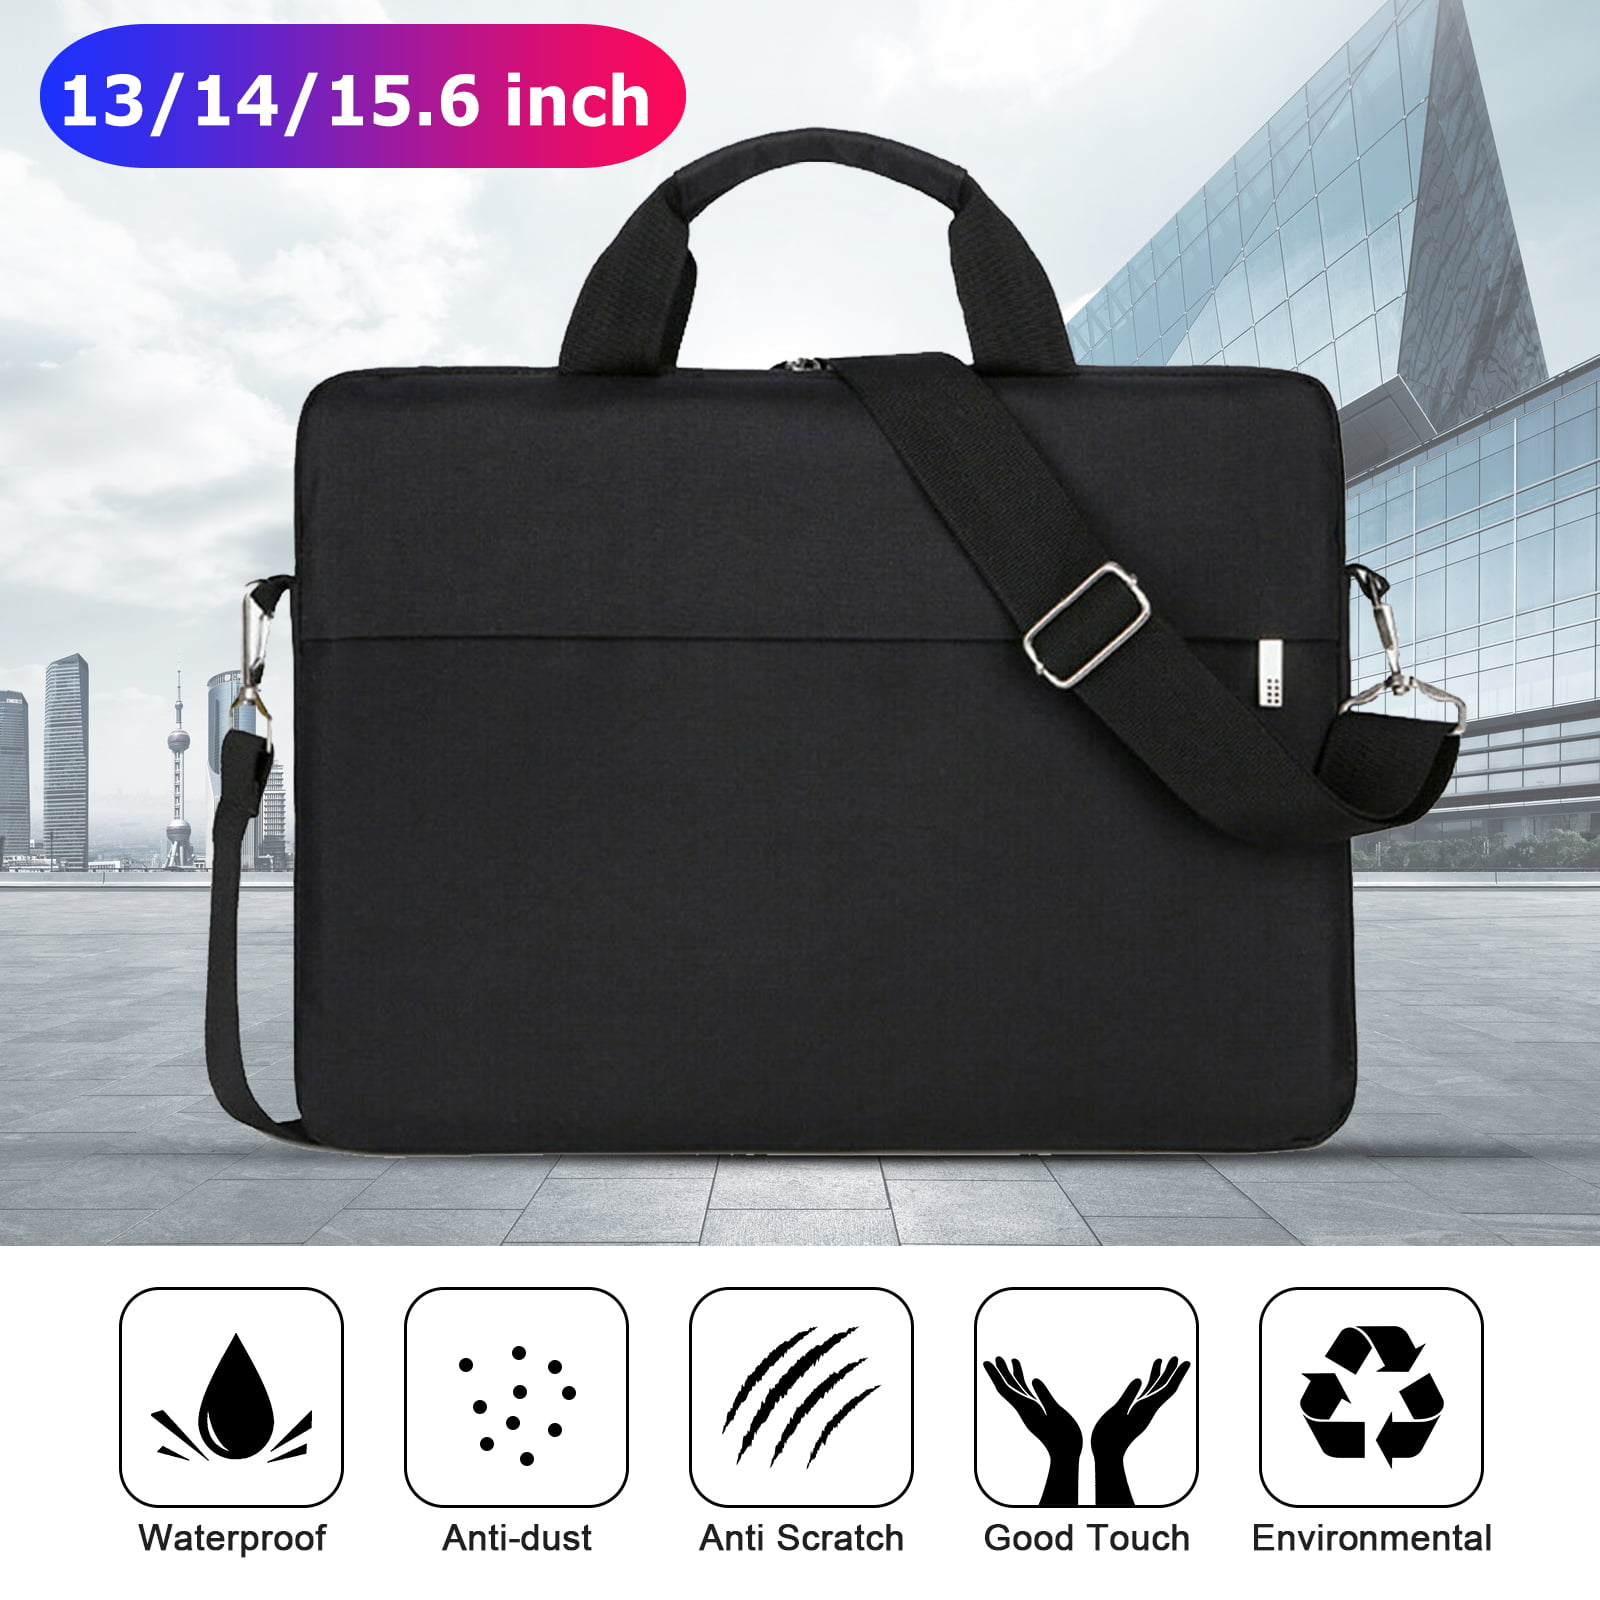 Briefcases for Laptop City Street Scene with Buildings Multi-Functional Unisex Crossbody Bag Fit for 15 Inch Computer Notebook MacBook